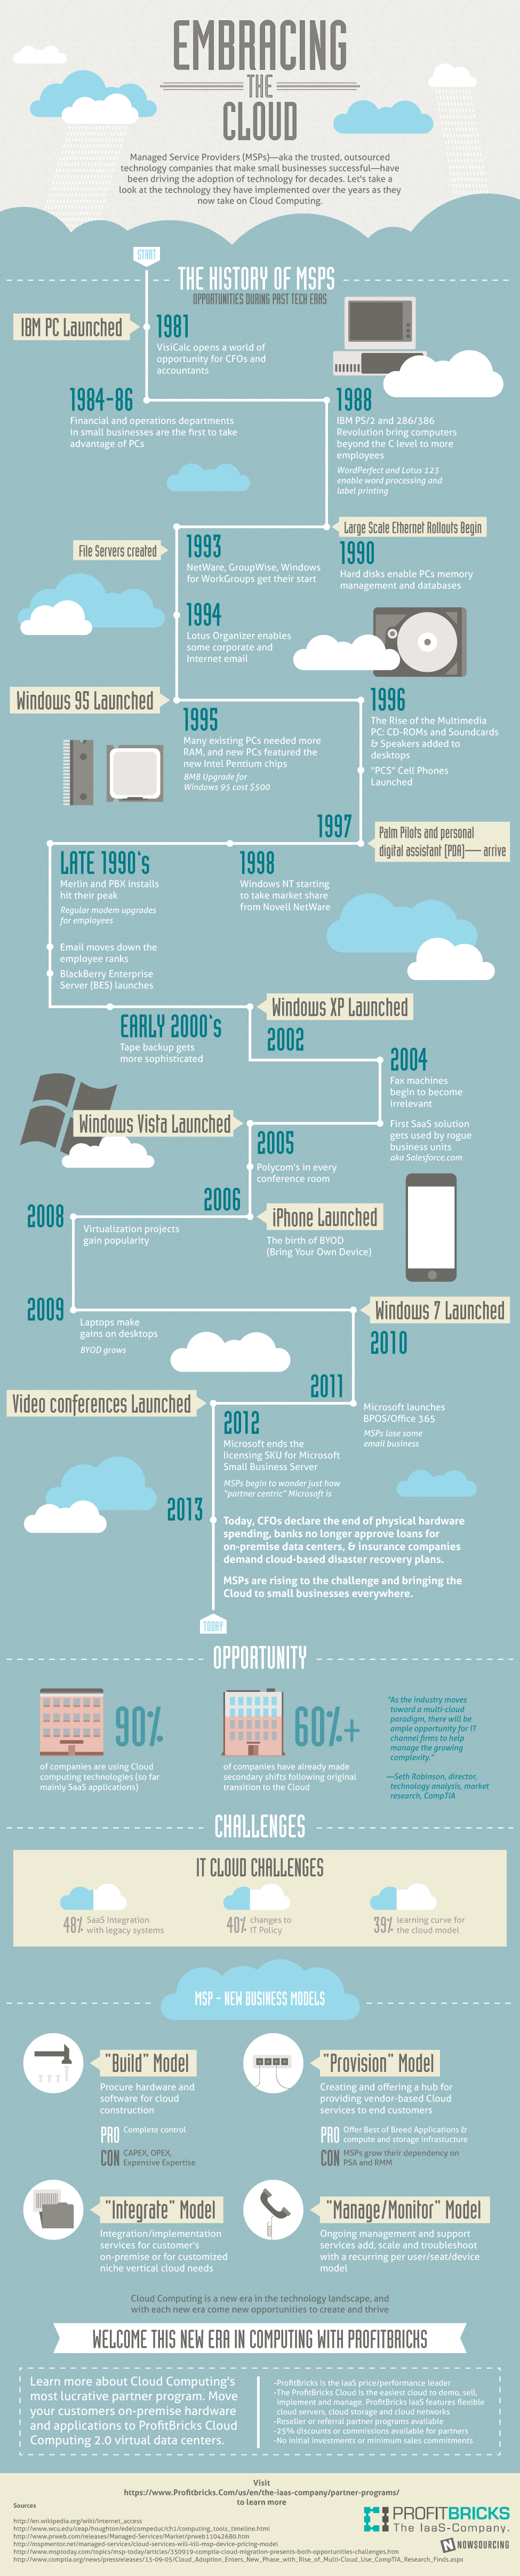 Cloud-Computing-MSP-Infographic-Profitbricks